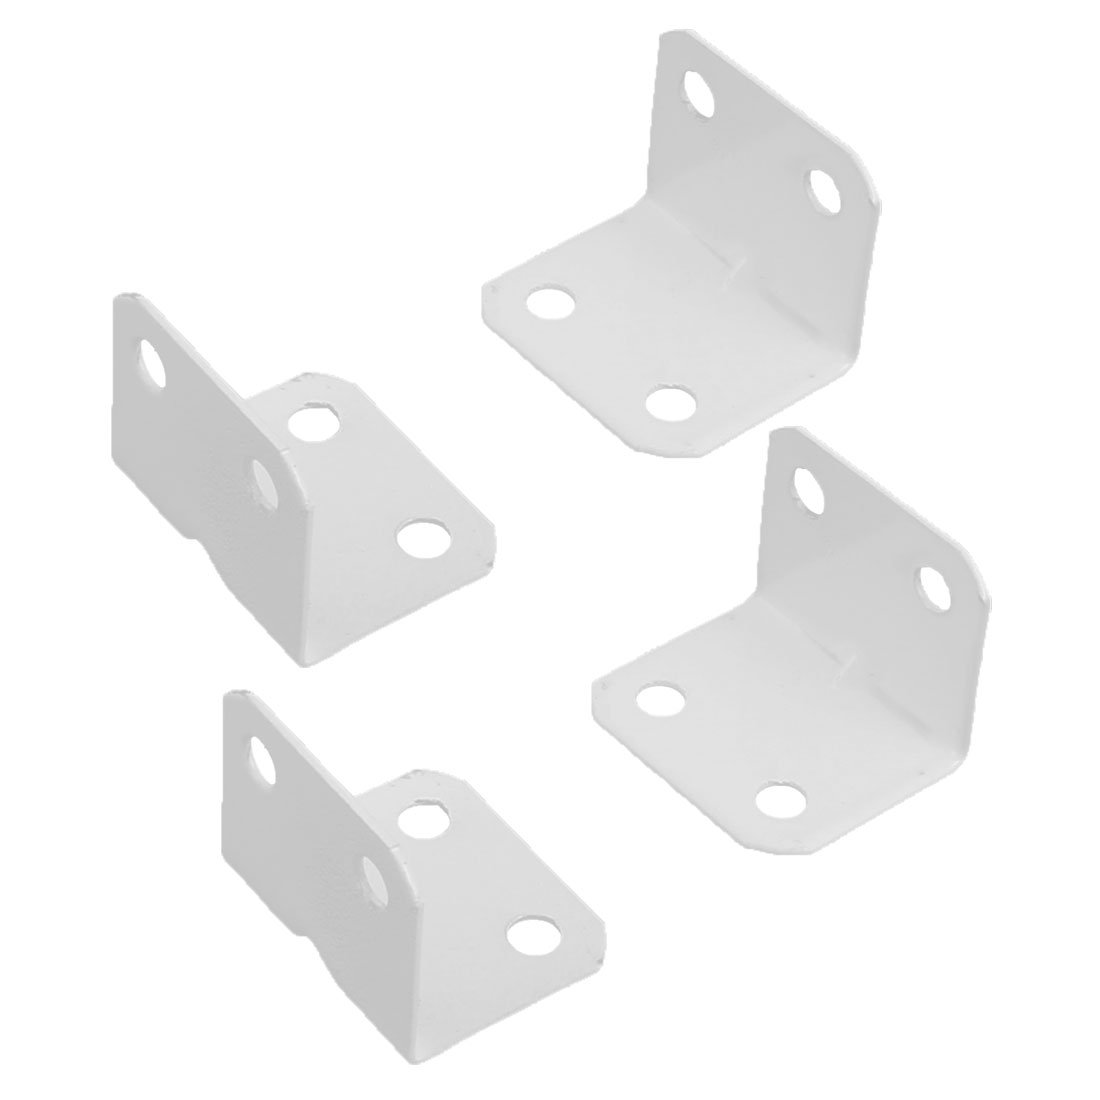 Uxcell a16080800ux0287 Home Furniture L Shape 90 Degree Right Angle Metal Corner Brace Plate Bracket (Pack of 4)